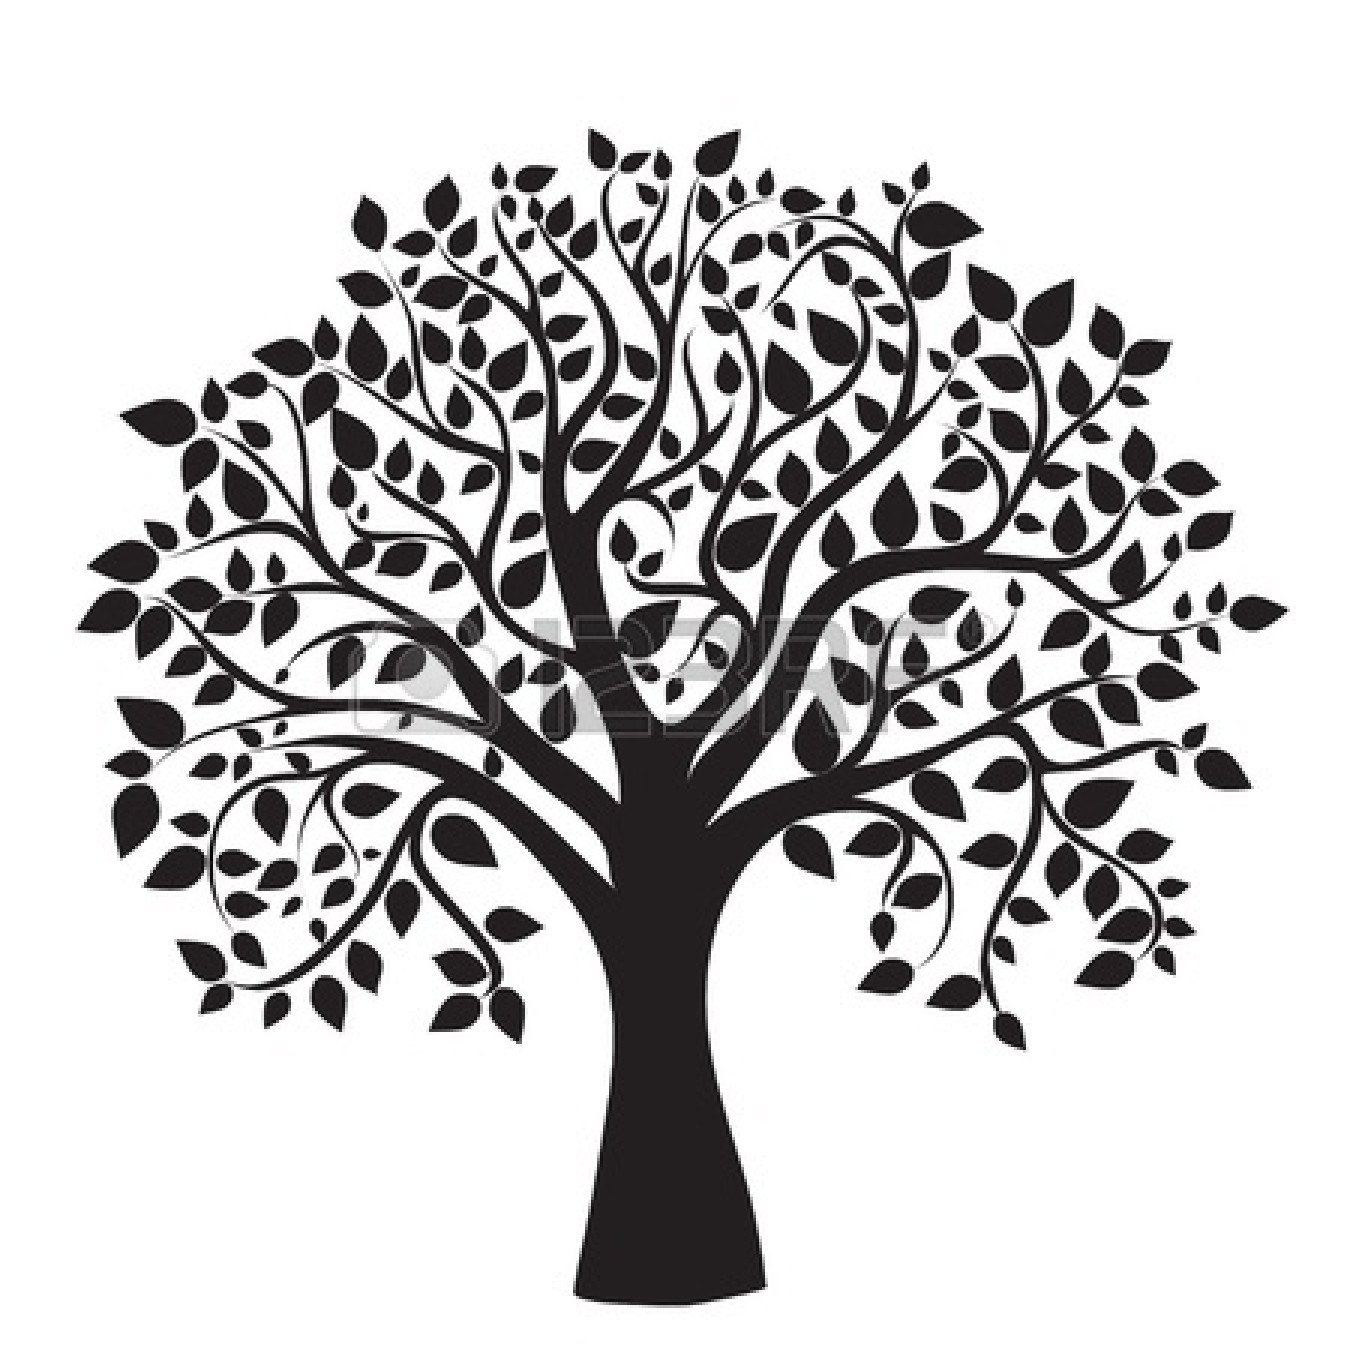 Free Family Tree Clip Clip Art Black And-Free Family Tree Clip Clip Art Black And White Family Tree Images-9